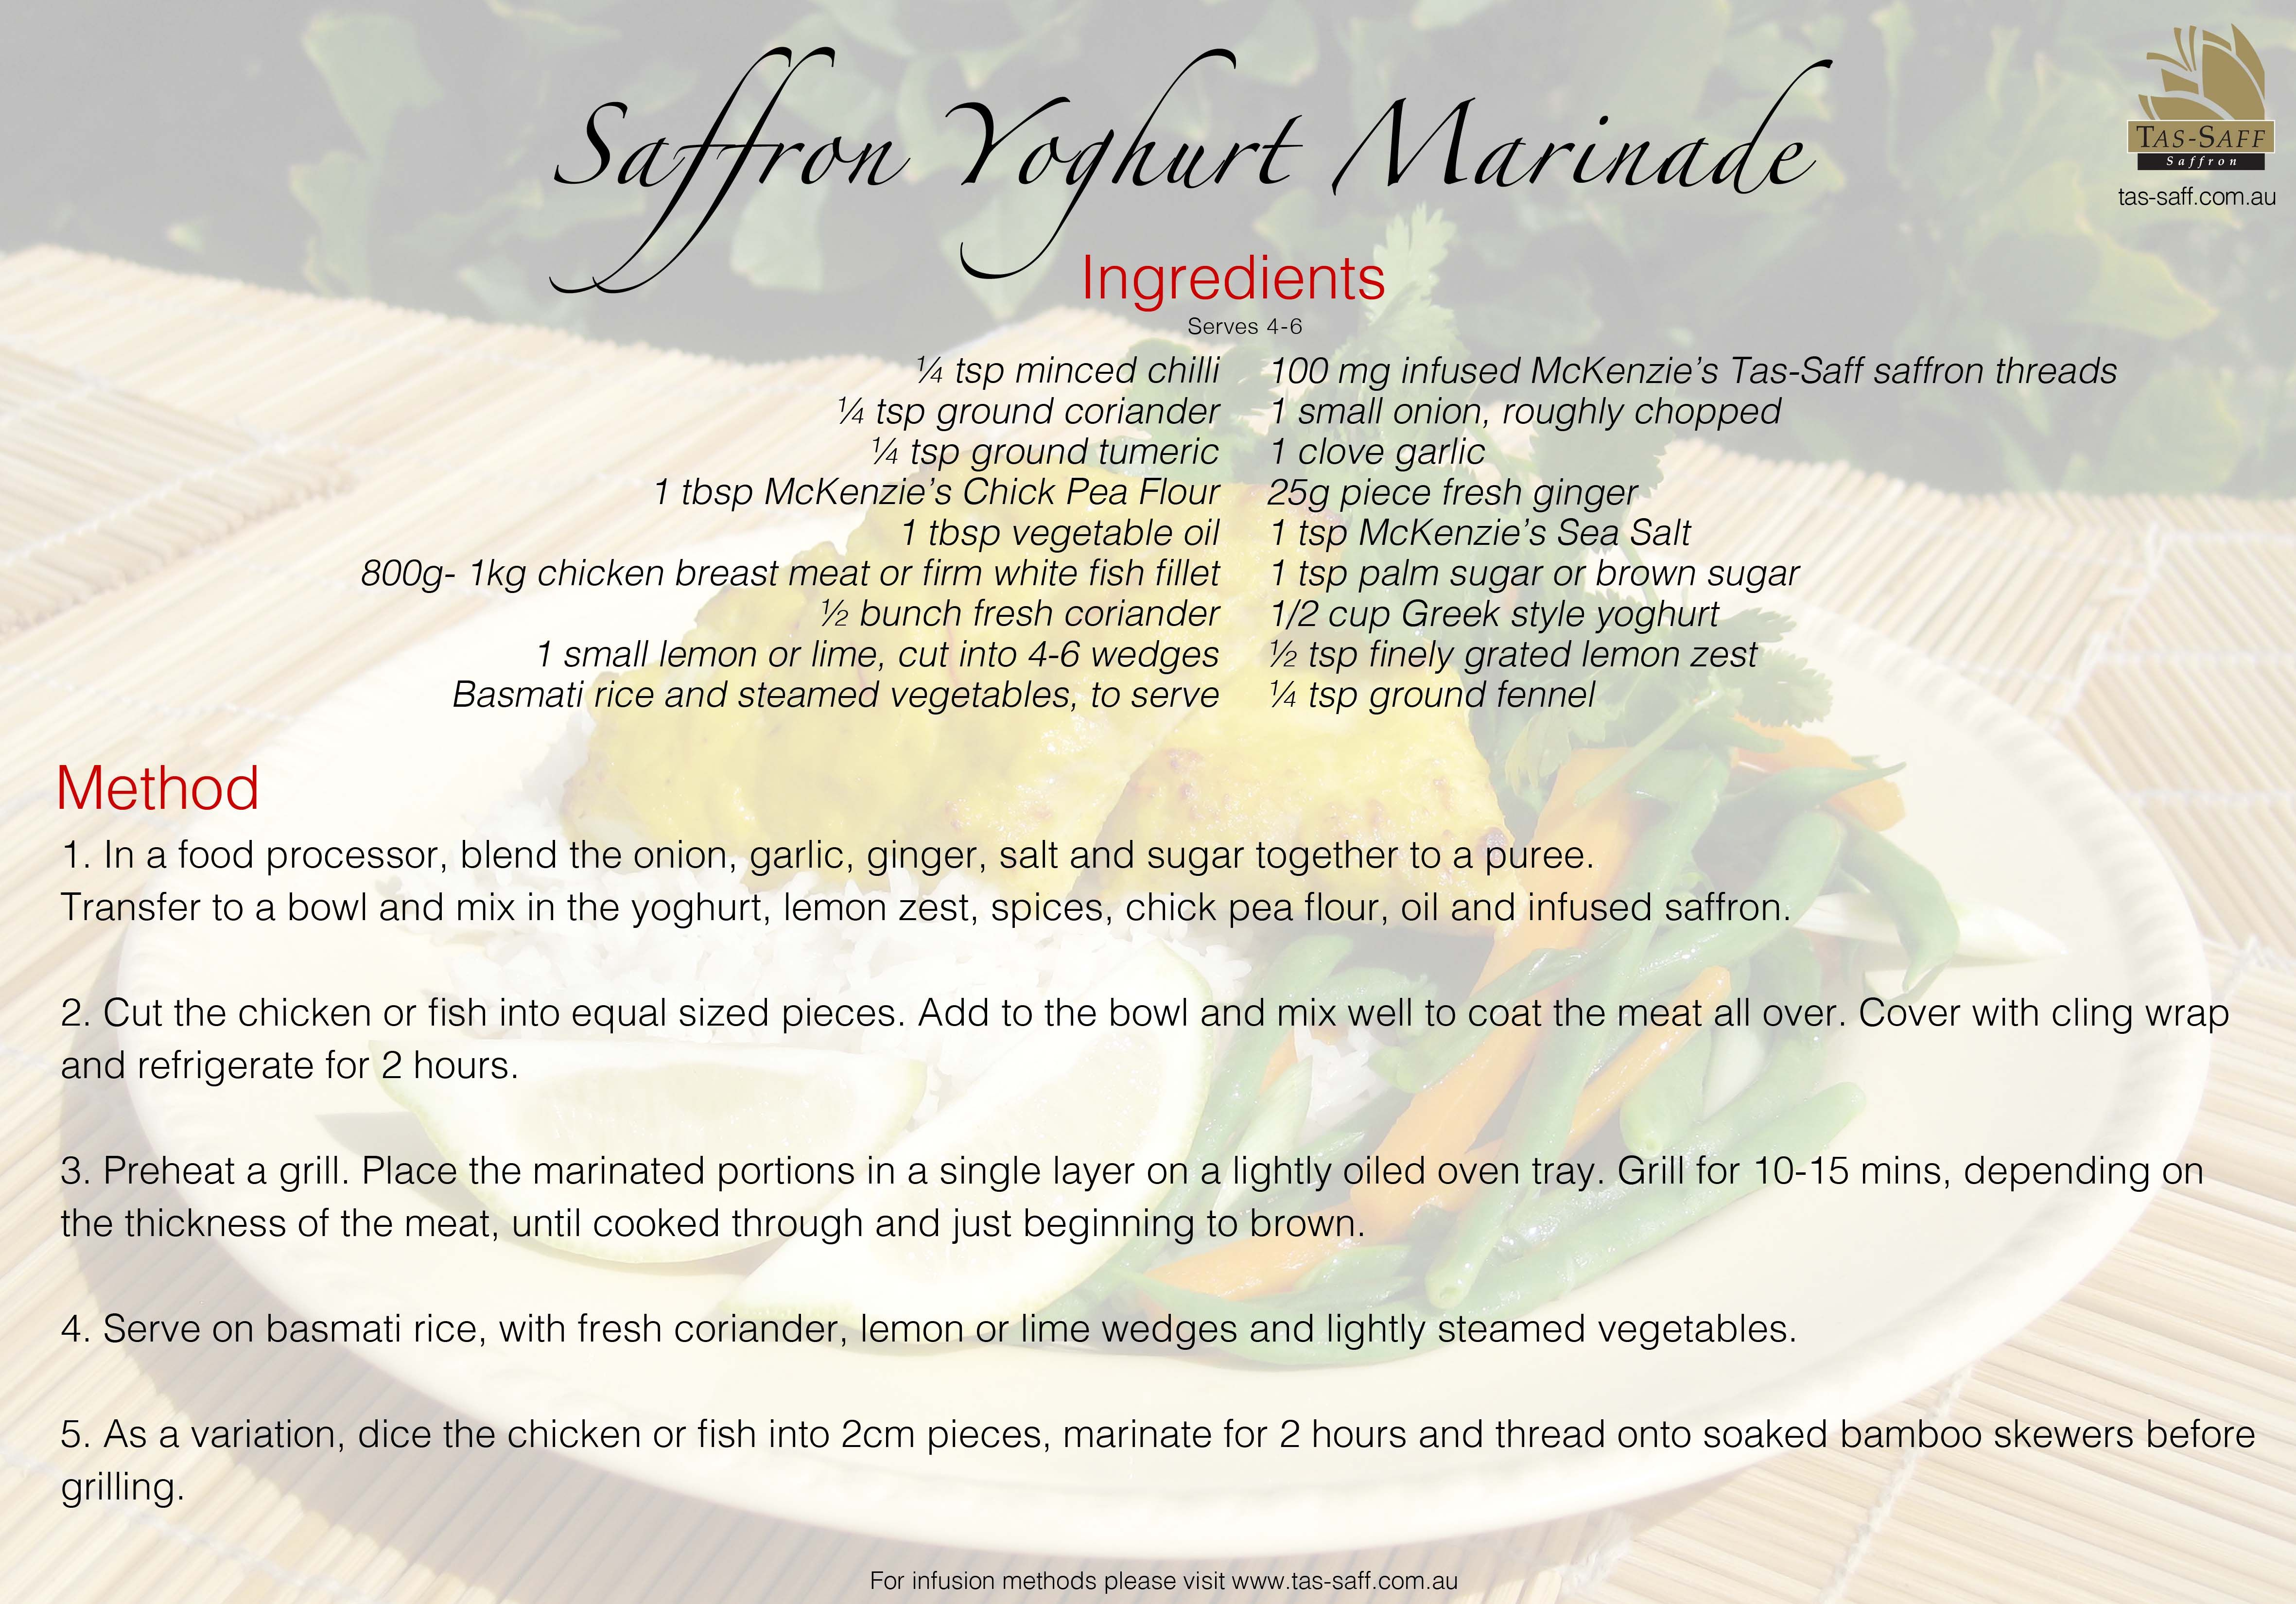 Tas-Saff have created some great original #recipes to try over #Easter. Try our Saffron Yoghurt Marinade!